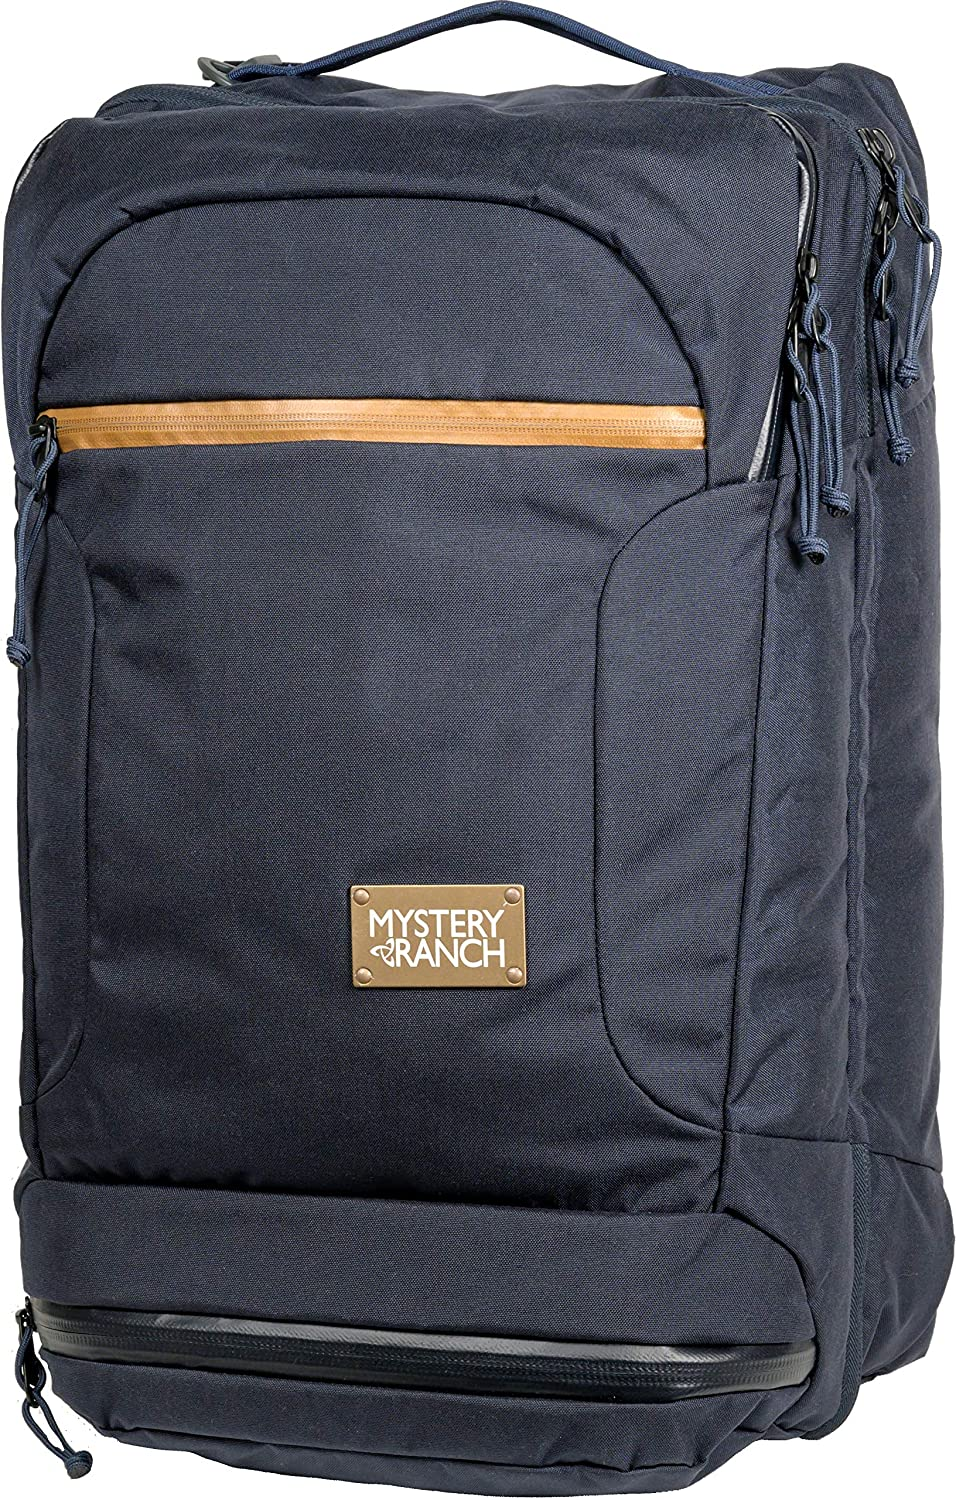 MYSTERY RANCH Mission Rover Travel Bag - Carry-on Suitcase, 3-Way Carry, Galaxy, 35L